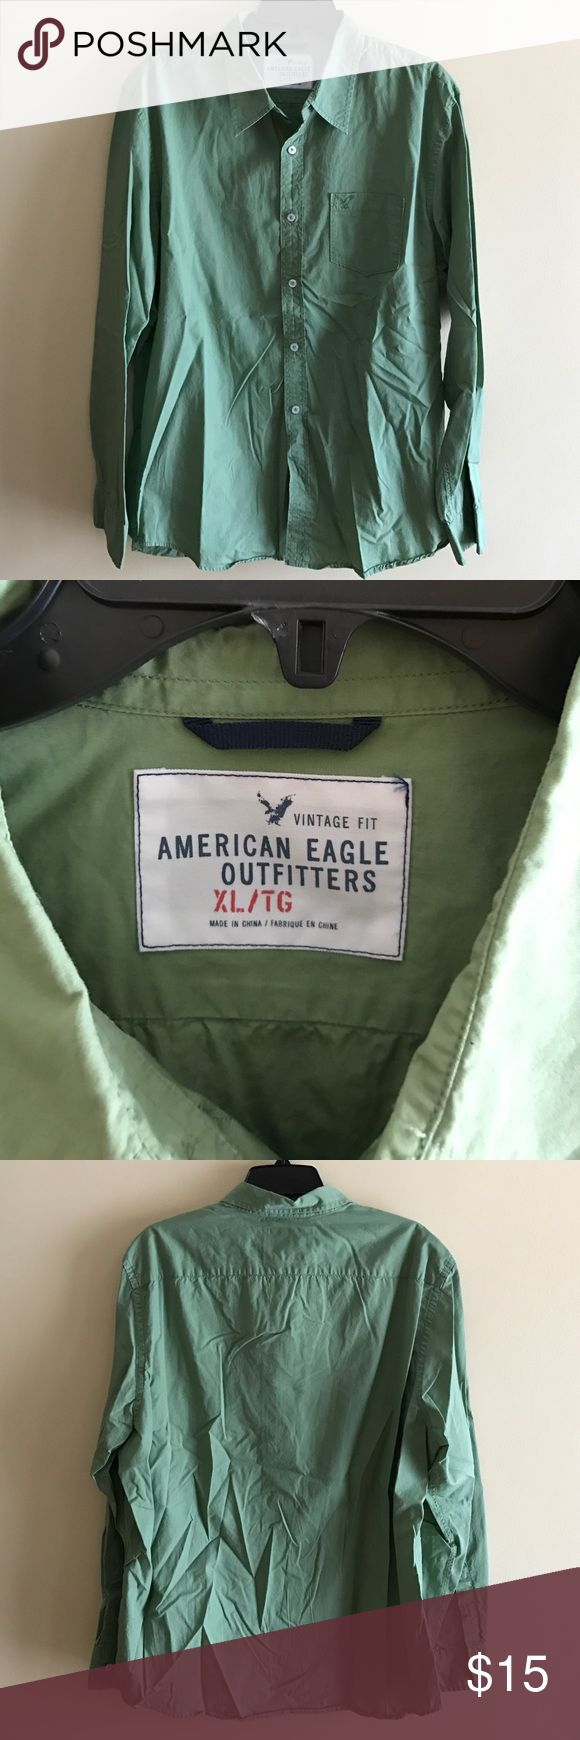 Men's size XL American Eagle dress shirt - Green Men's size XL American Eagle dress shirt - Green in color. Excellent condition. Smoke free home. American Eagle Outfitters Shirts Dress Shirts